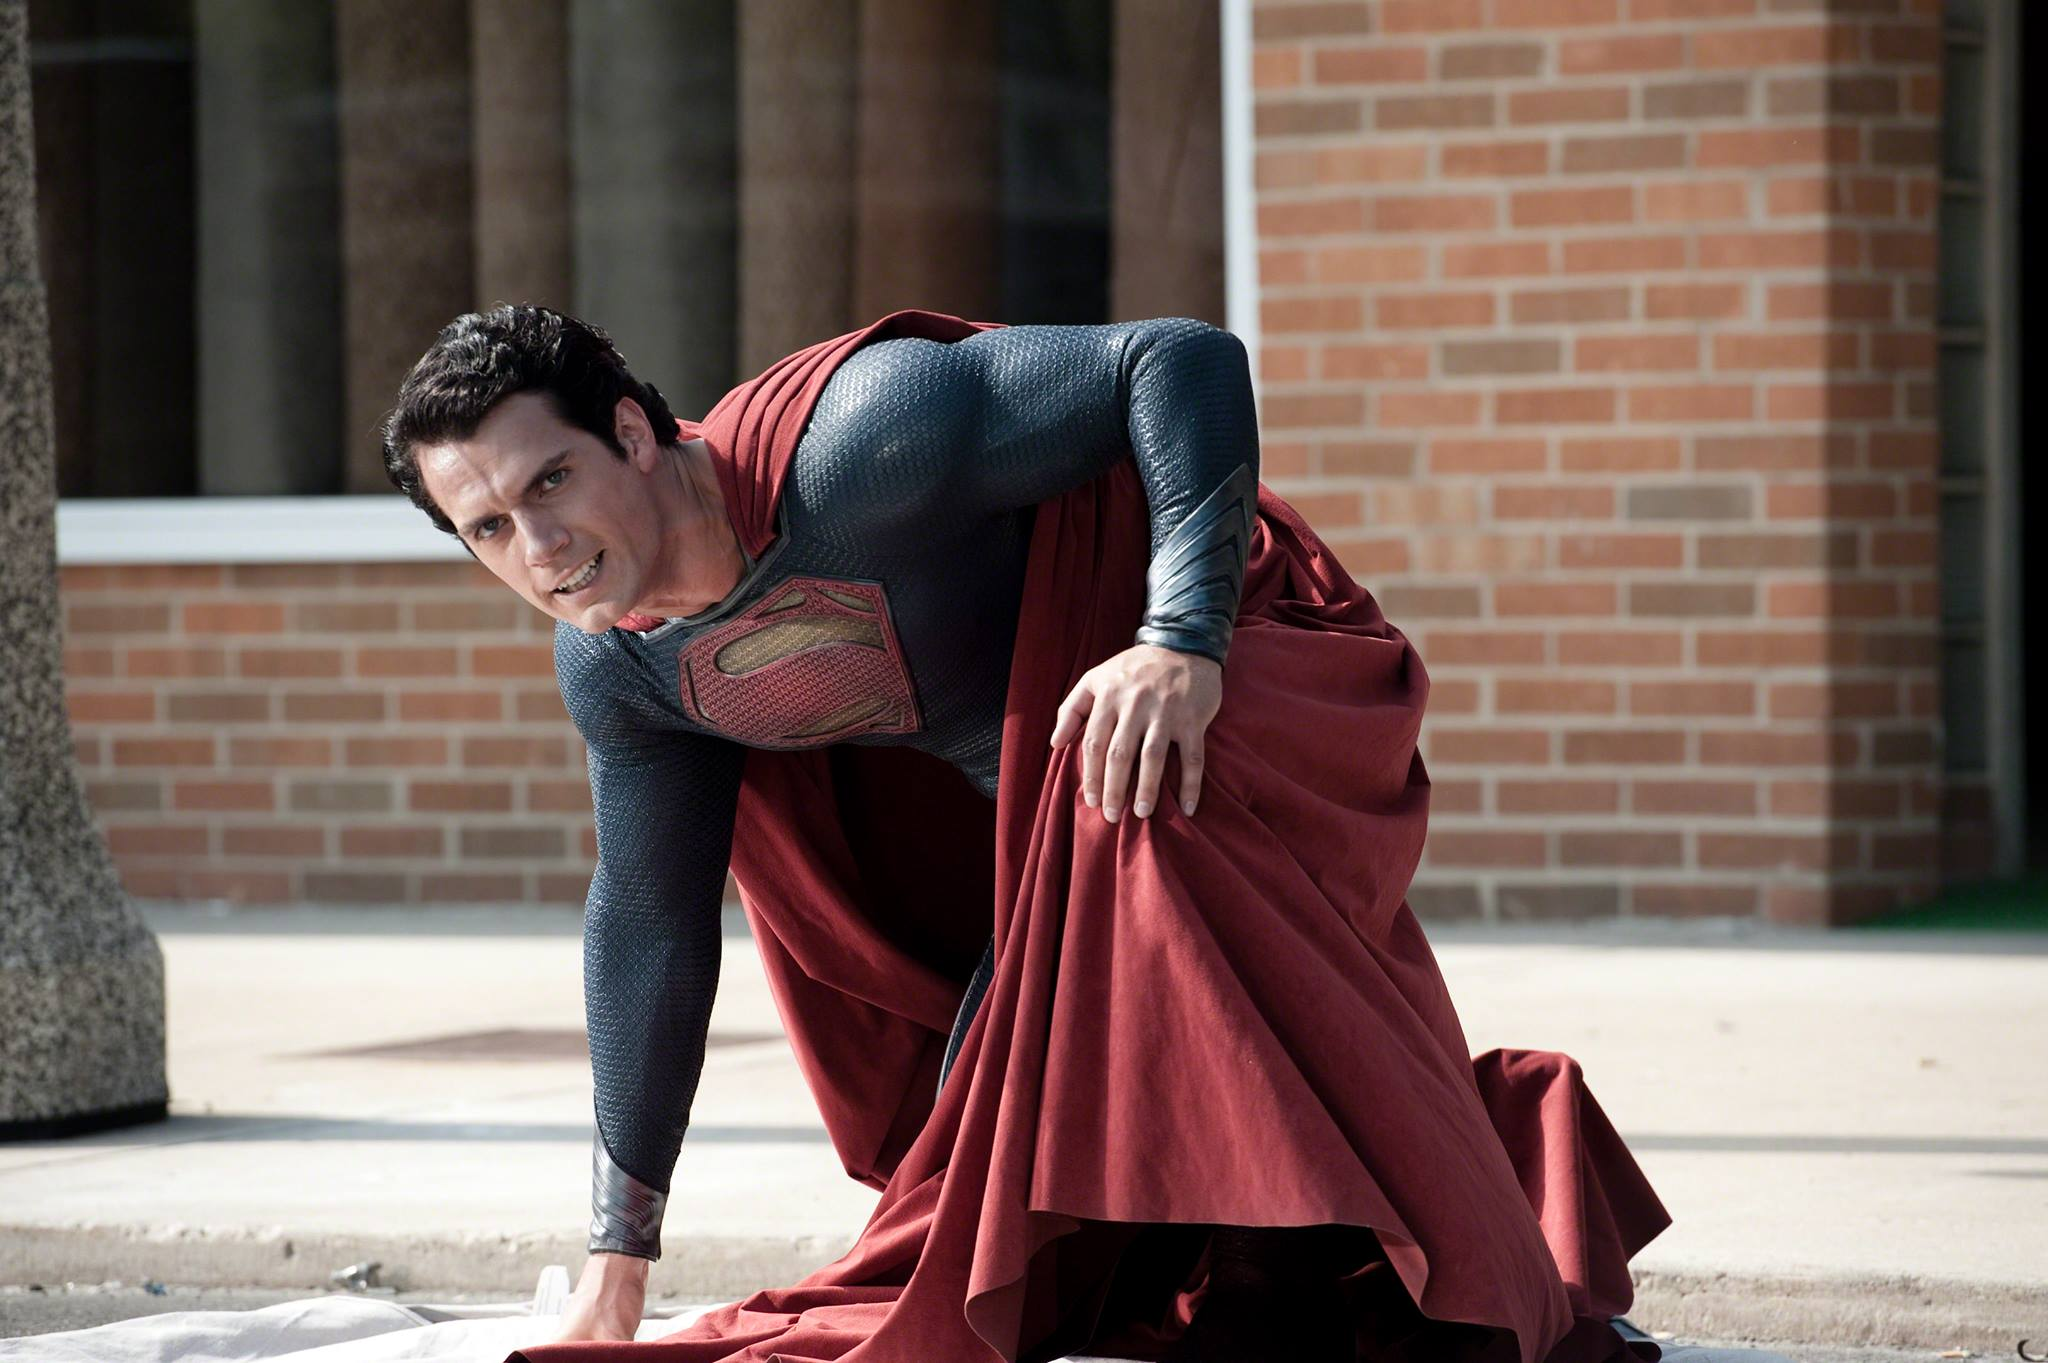 Superman Five actors who could replace Henry Cavill as